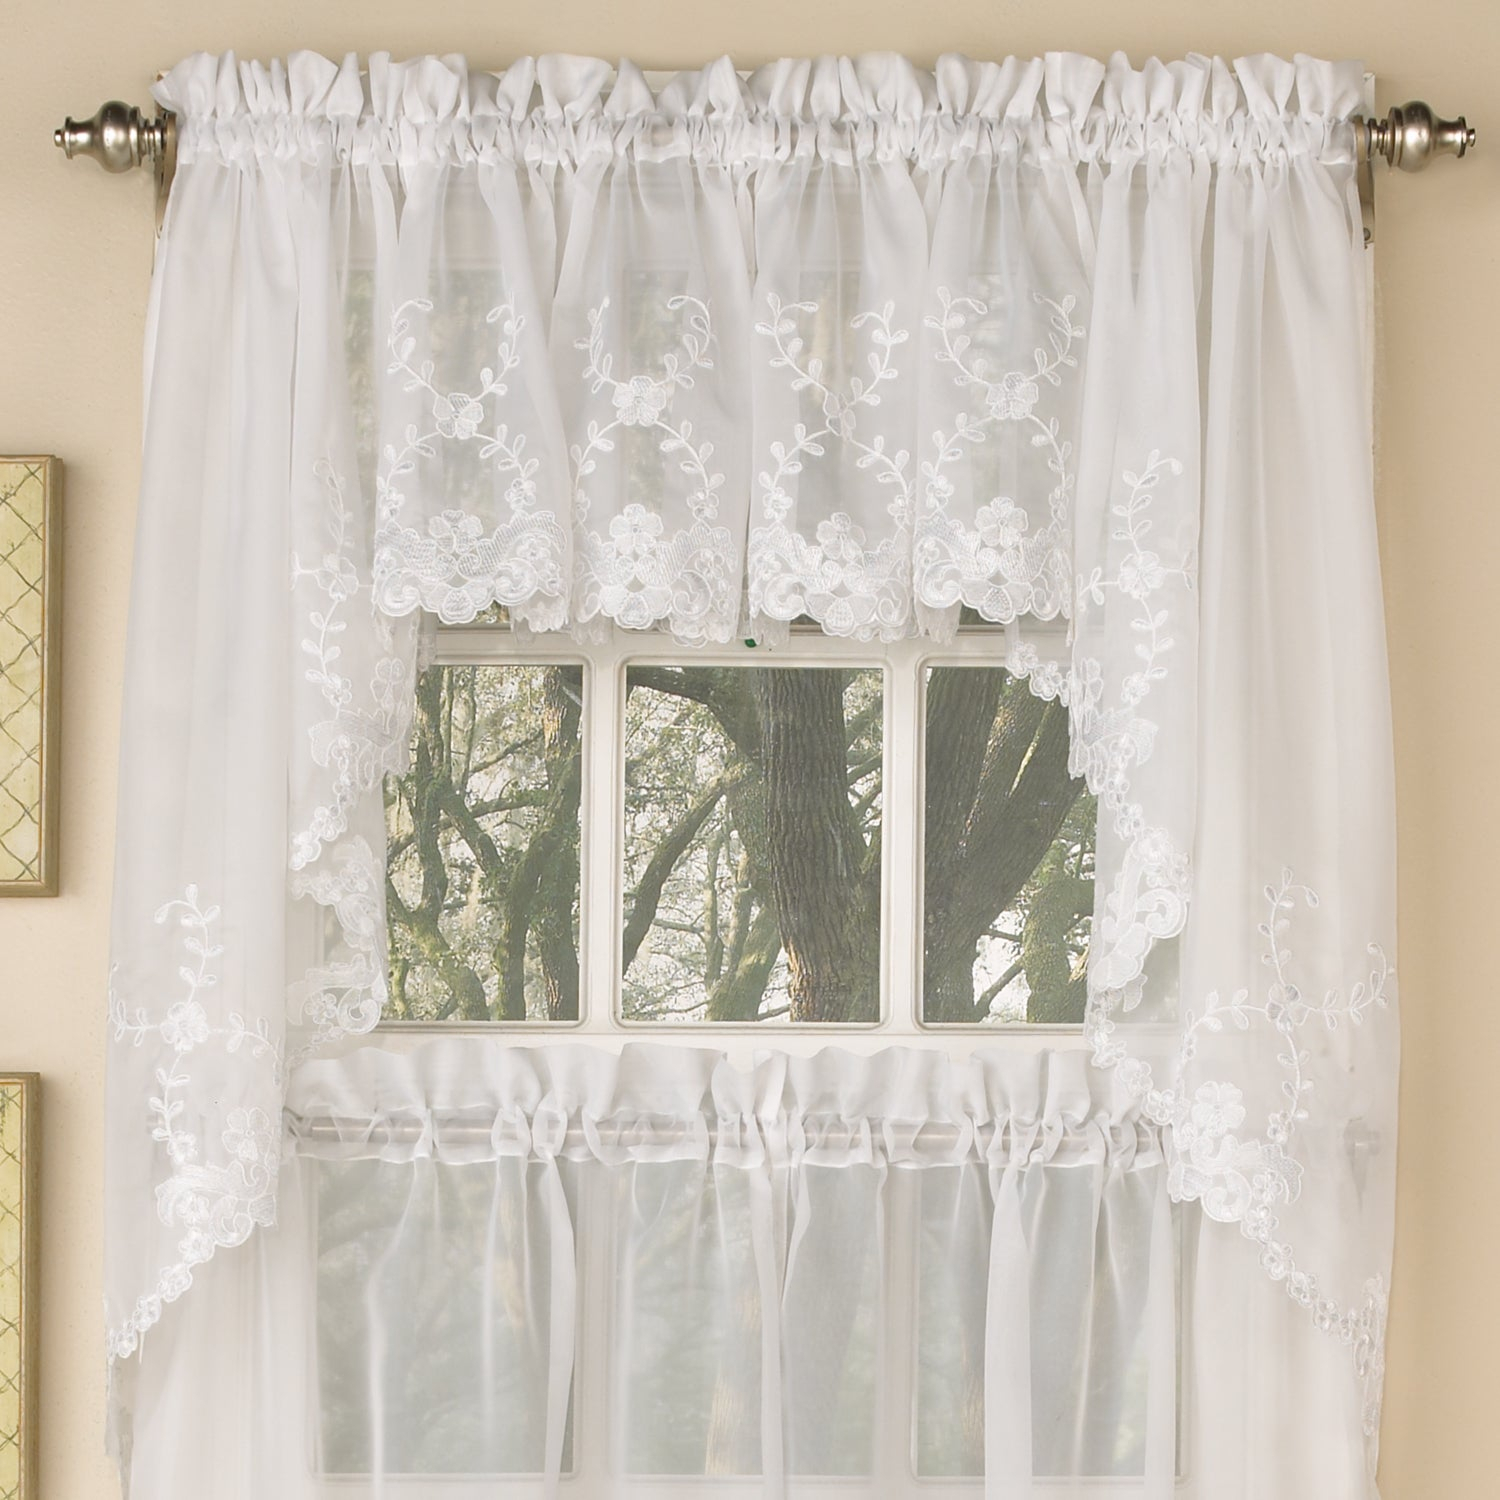 Sheer Voile Embroidered Scrolling Floral Leaf Pattern Window Curtain Pieces – Tiers, Valance And Swag Pair Options With Regard To White Tone On Tone Raised Microcheck Semisheer Window Curtain Pieces (View 19 of 20)